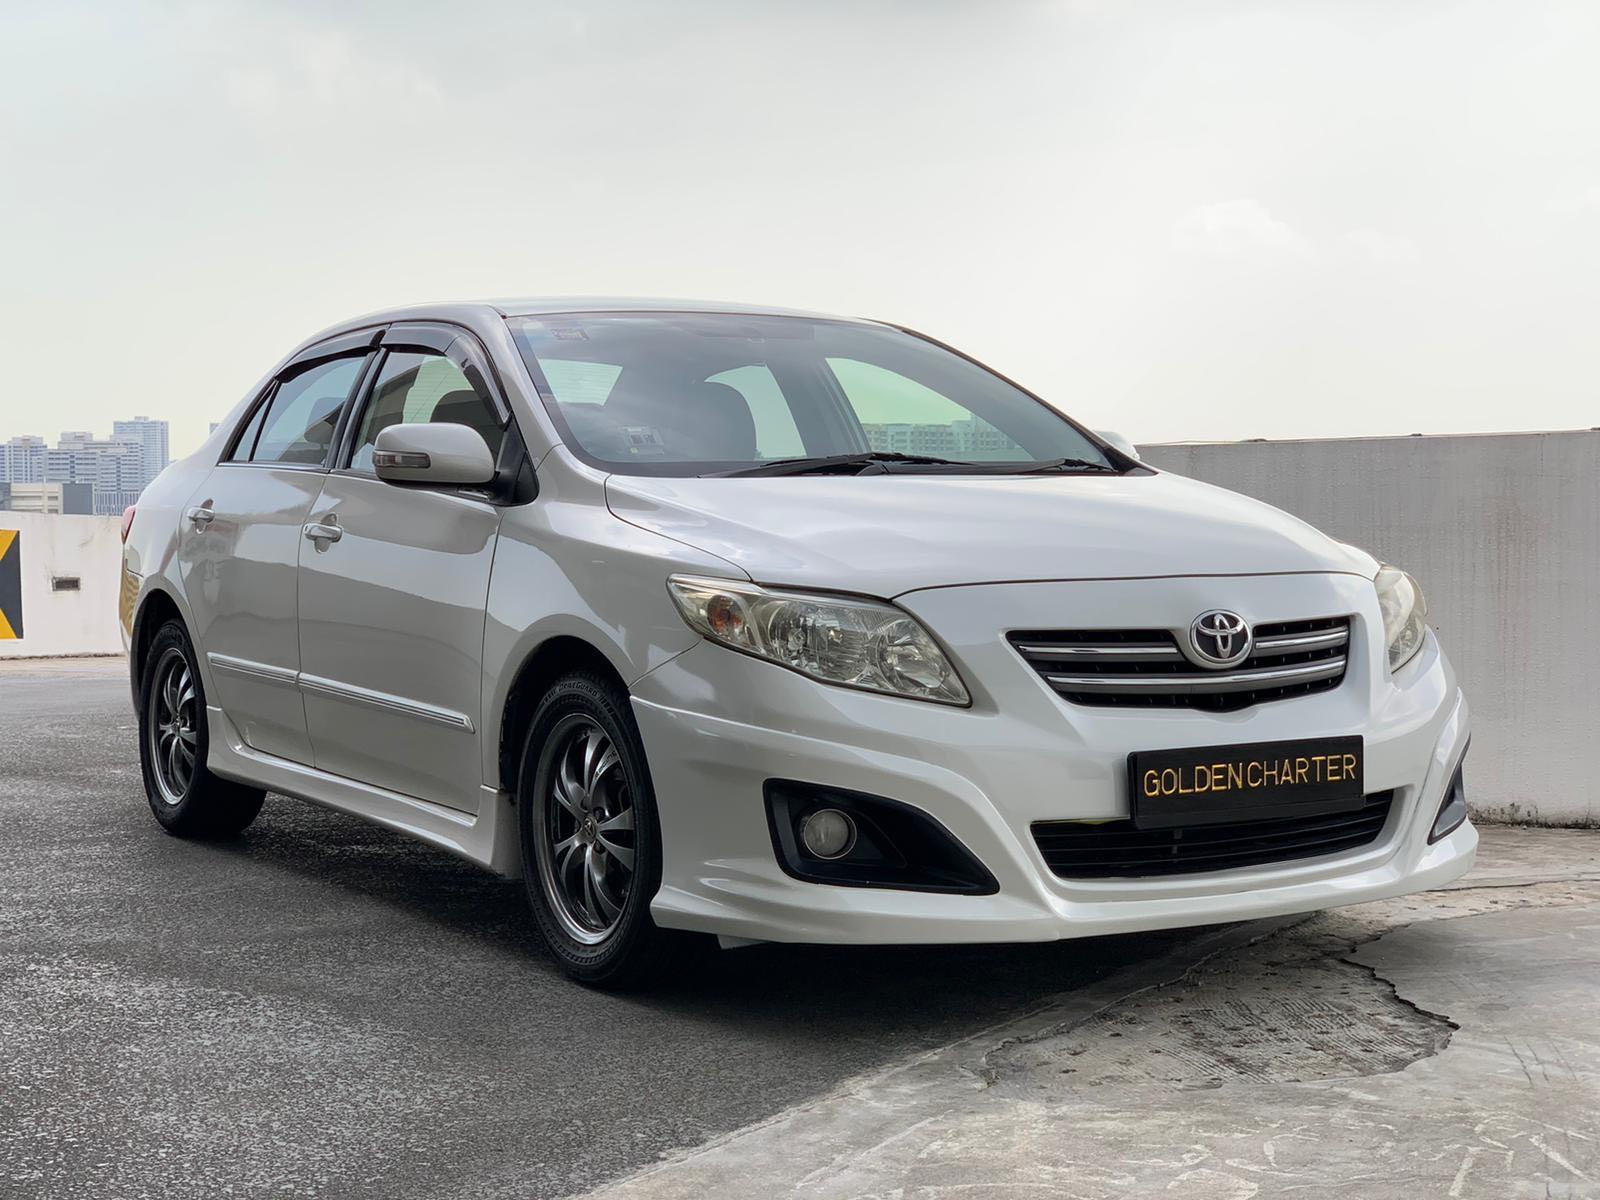 Toyota Altis For Rent! Private hire or personal use